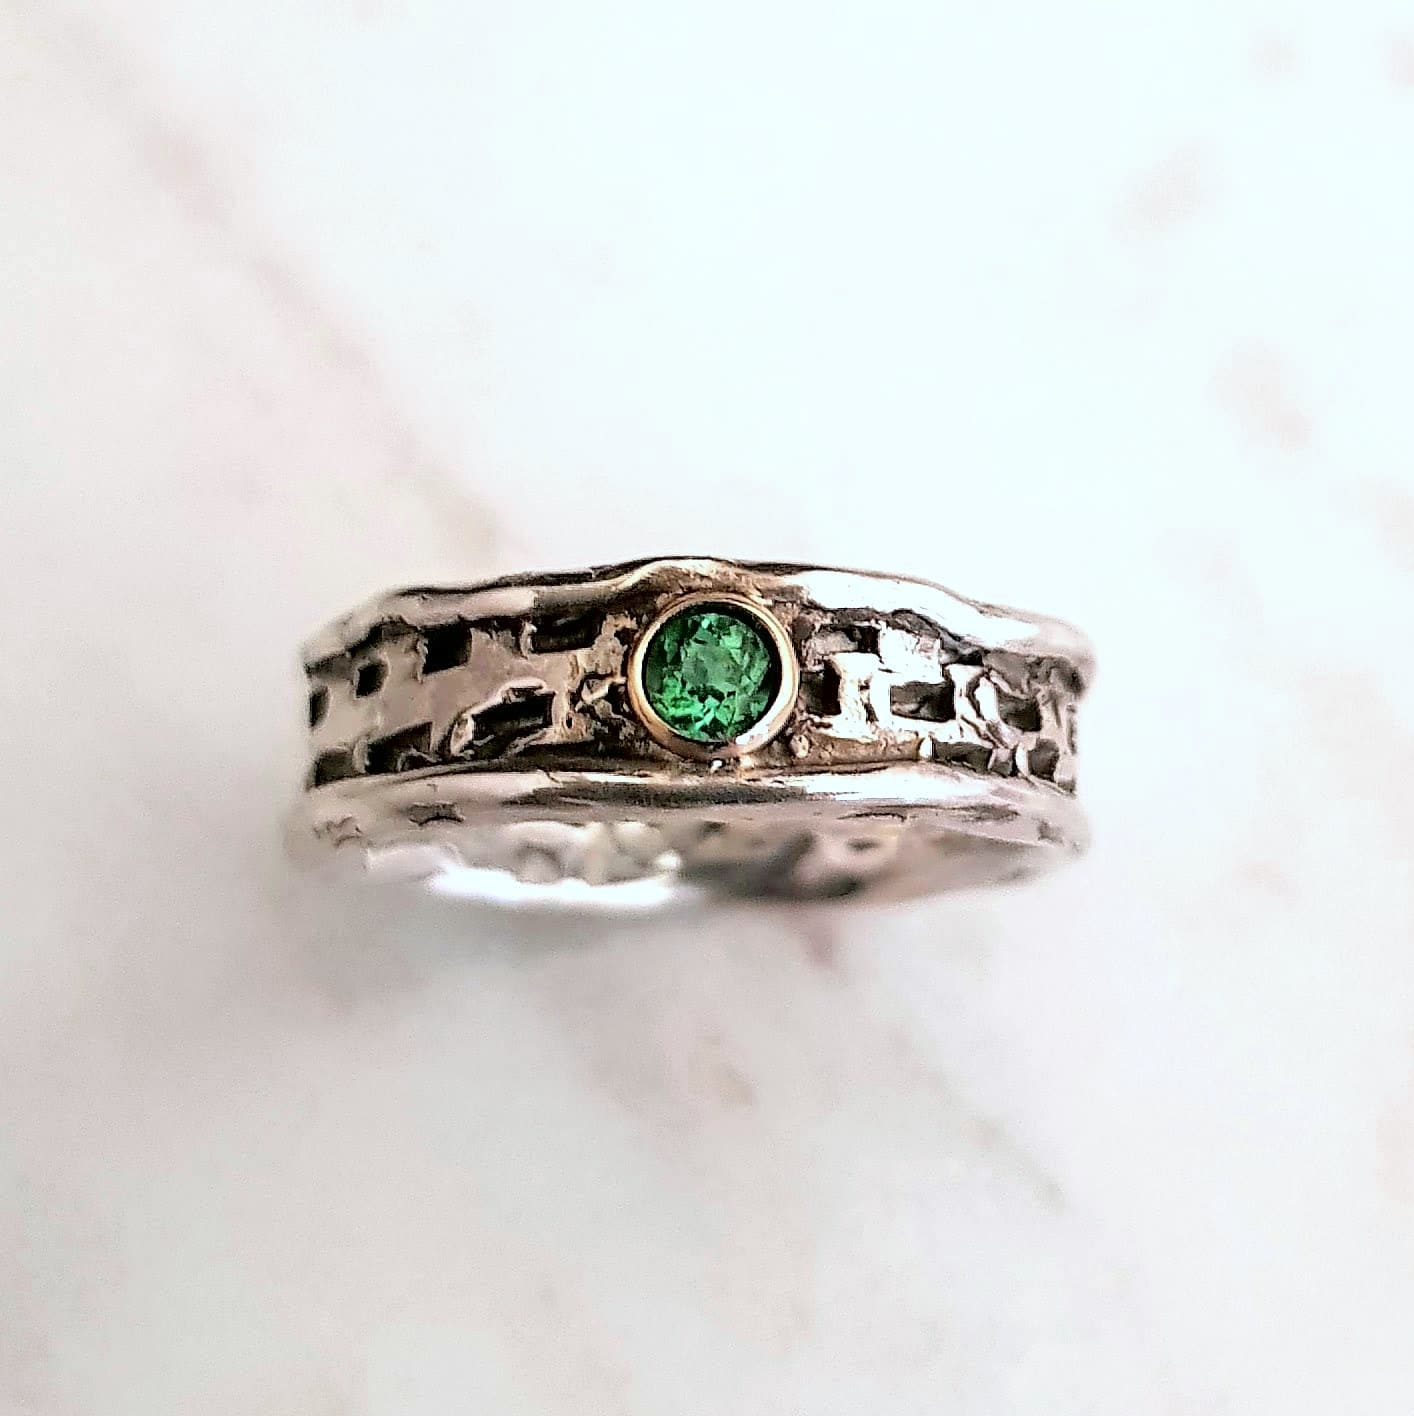 Textured Ring With 3mm Green Tourmaline Set In 9Ct Yellow Gold Rub Over Setting, Size N By Corinne Lomon